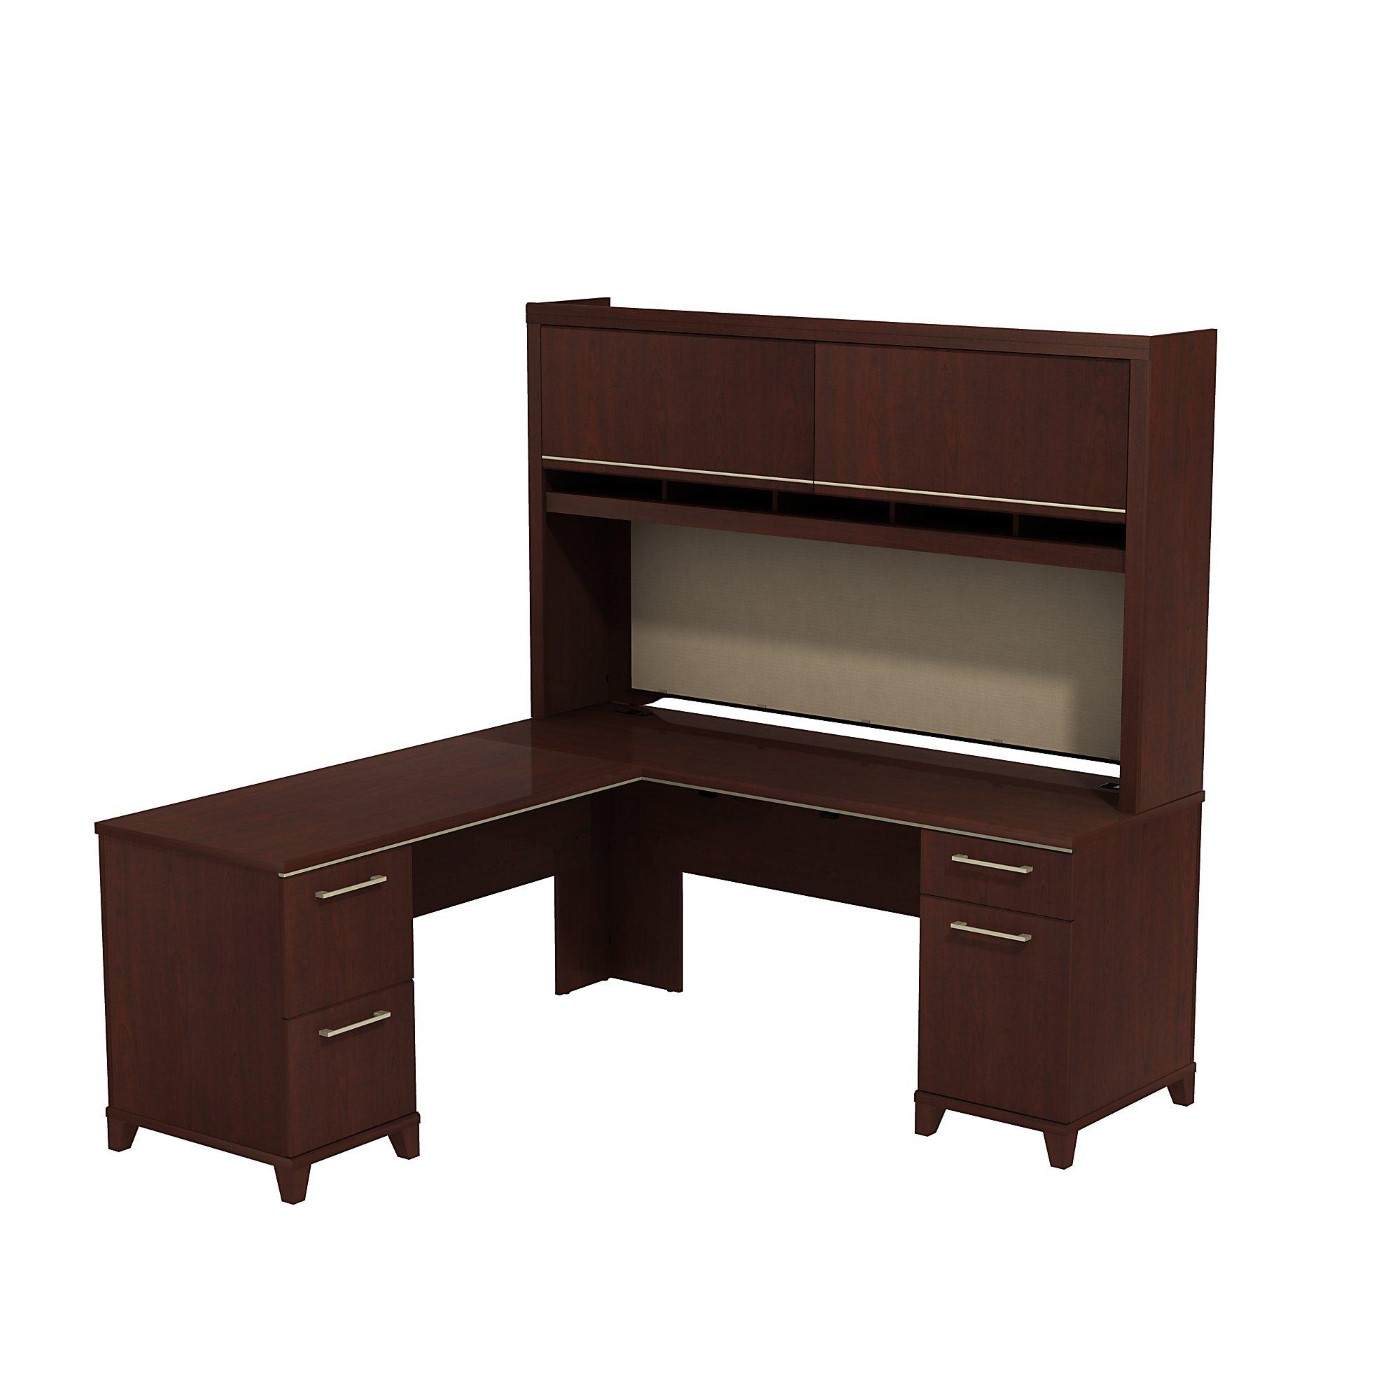 <font color=#c60><b>BUSH BUSINESS FURNITURE ENTERPRISE 72W X 72D L SHAPED DESK WITH HUTCH #EH-ENT008CS. FREE SHIPPING</font></b>